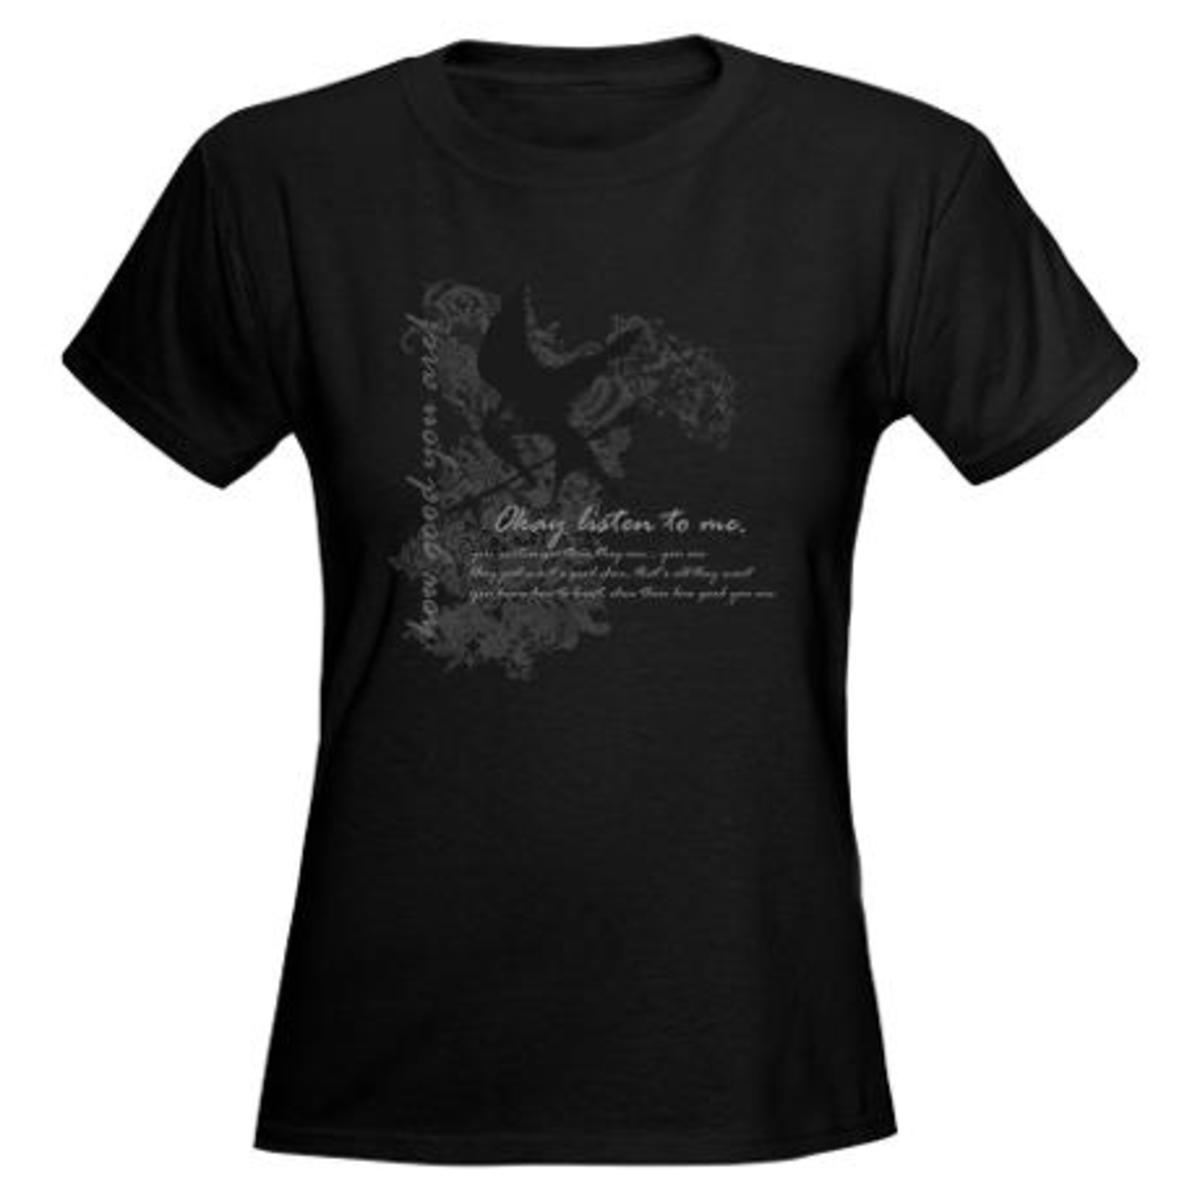 hunger-games-tshirt